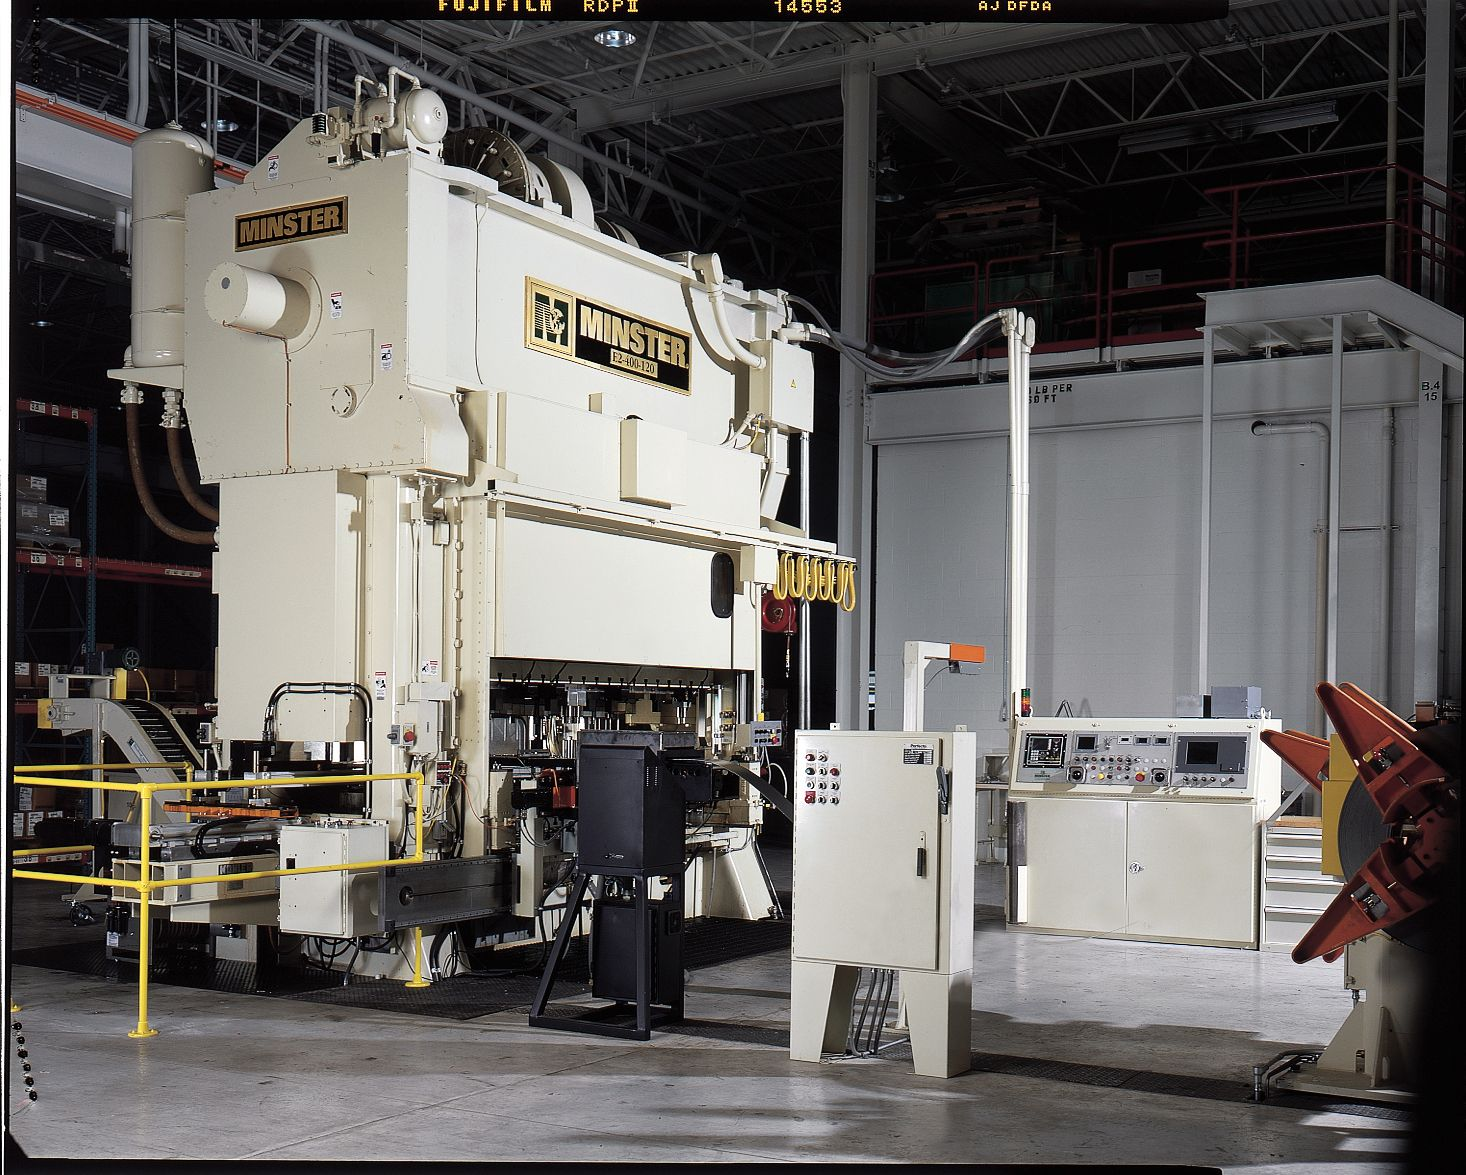 Large Metal Stamping Presses Are Used To Create Small Components That Go Into Many Things You Use Every Metal Stamping Presses Stamping Presses Metal Stamping